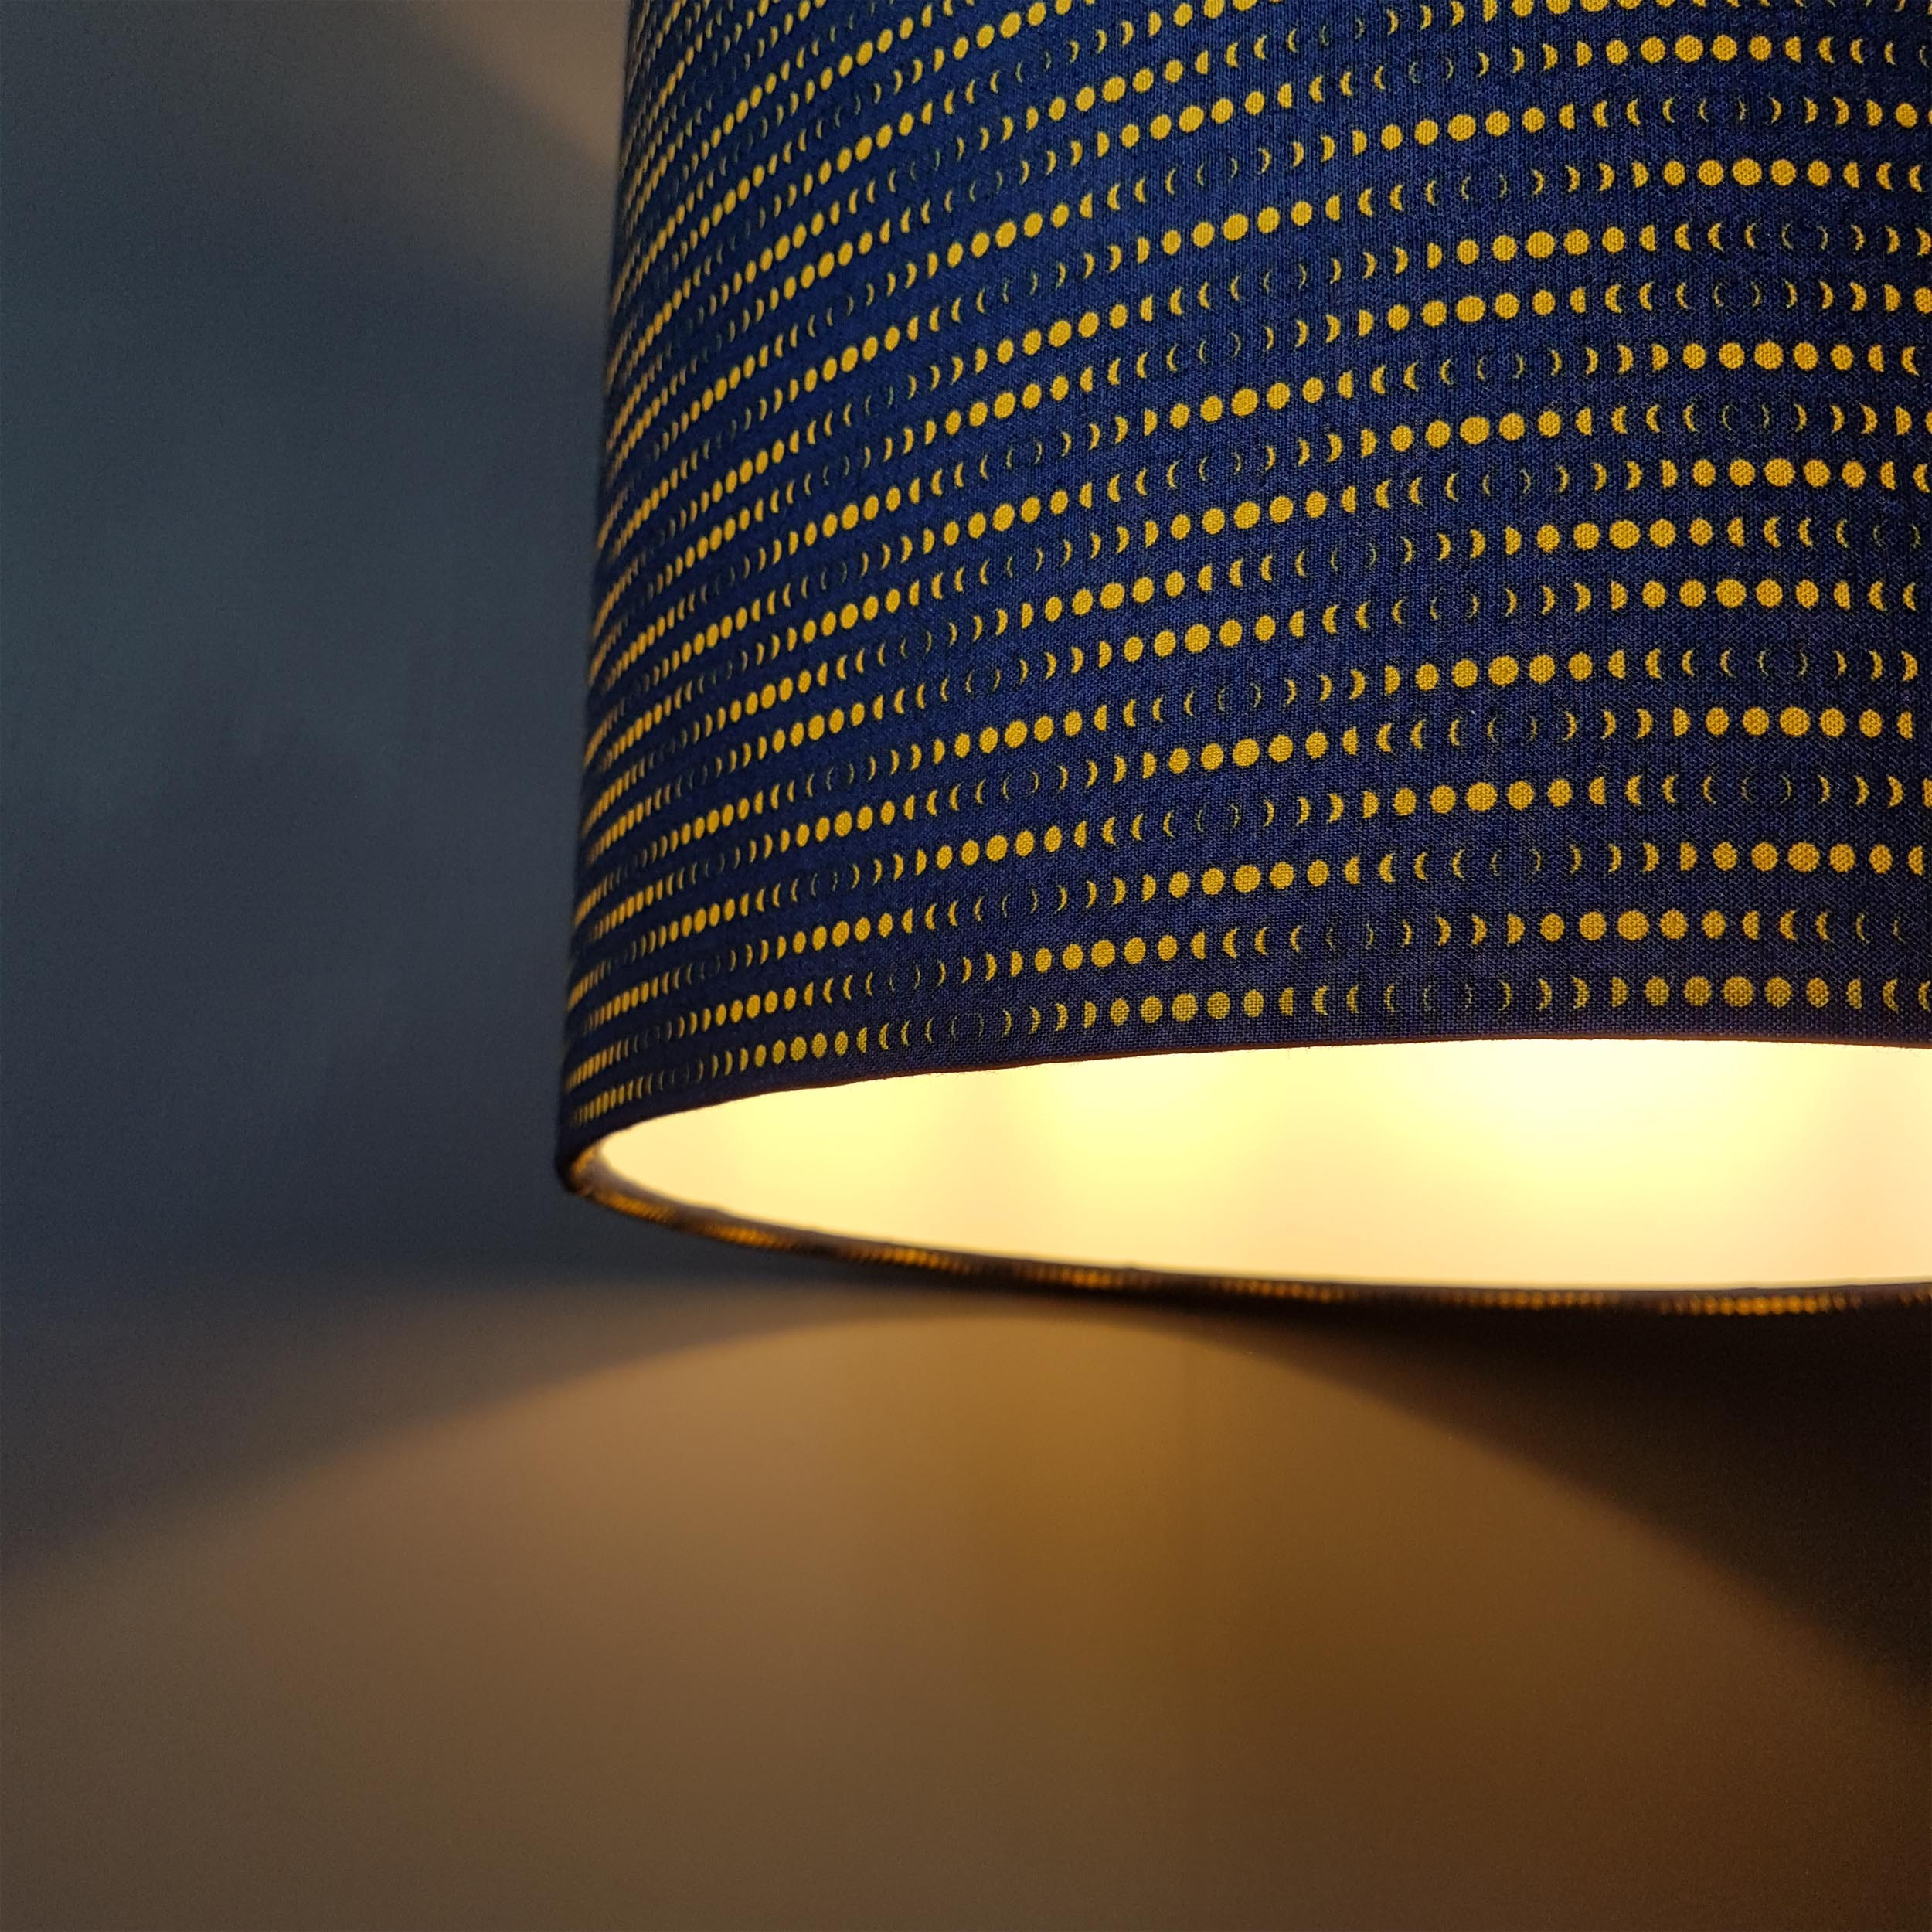 Navy Blue and Mustard Lampshade in a Moon Rabbit Cotton Fabric